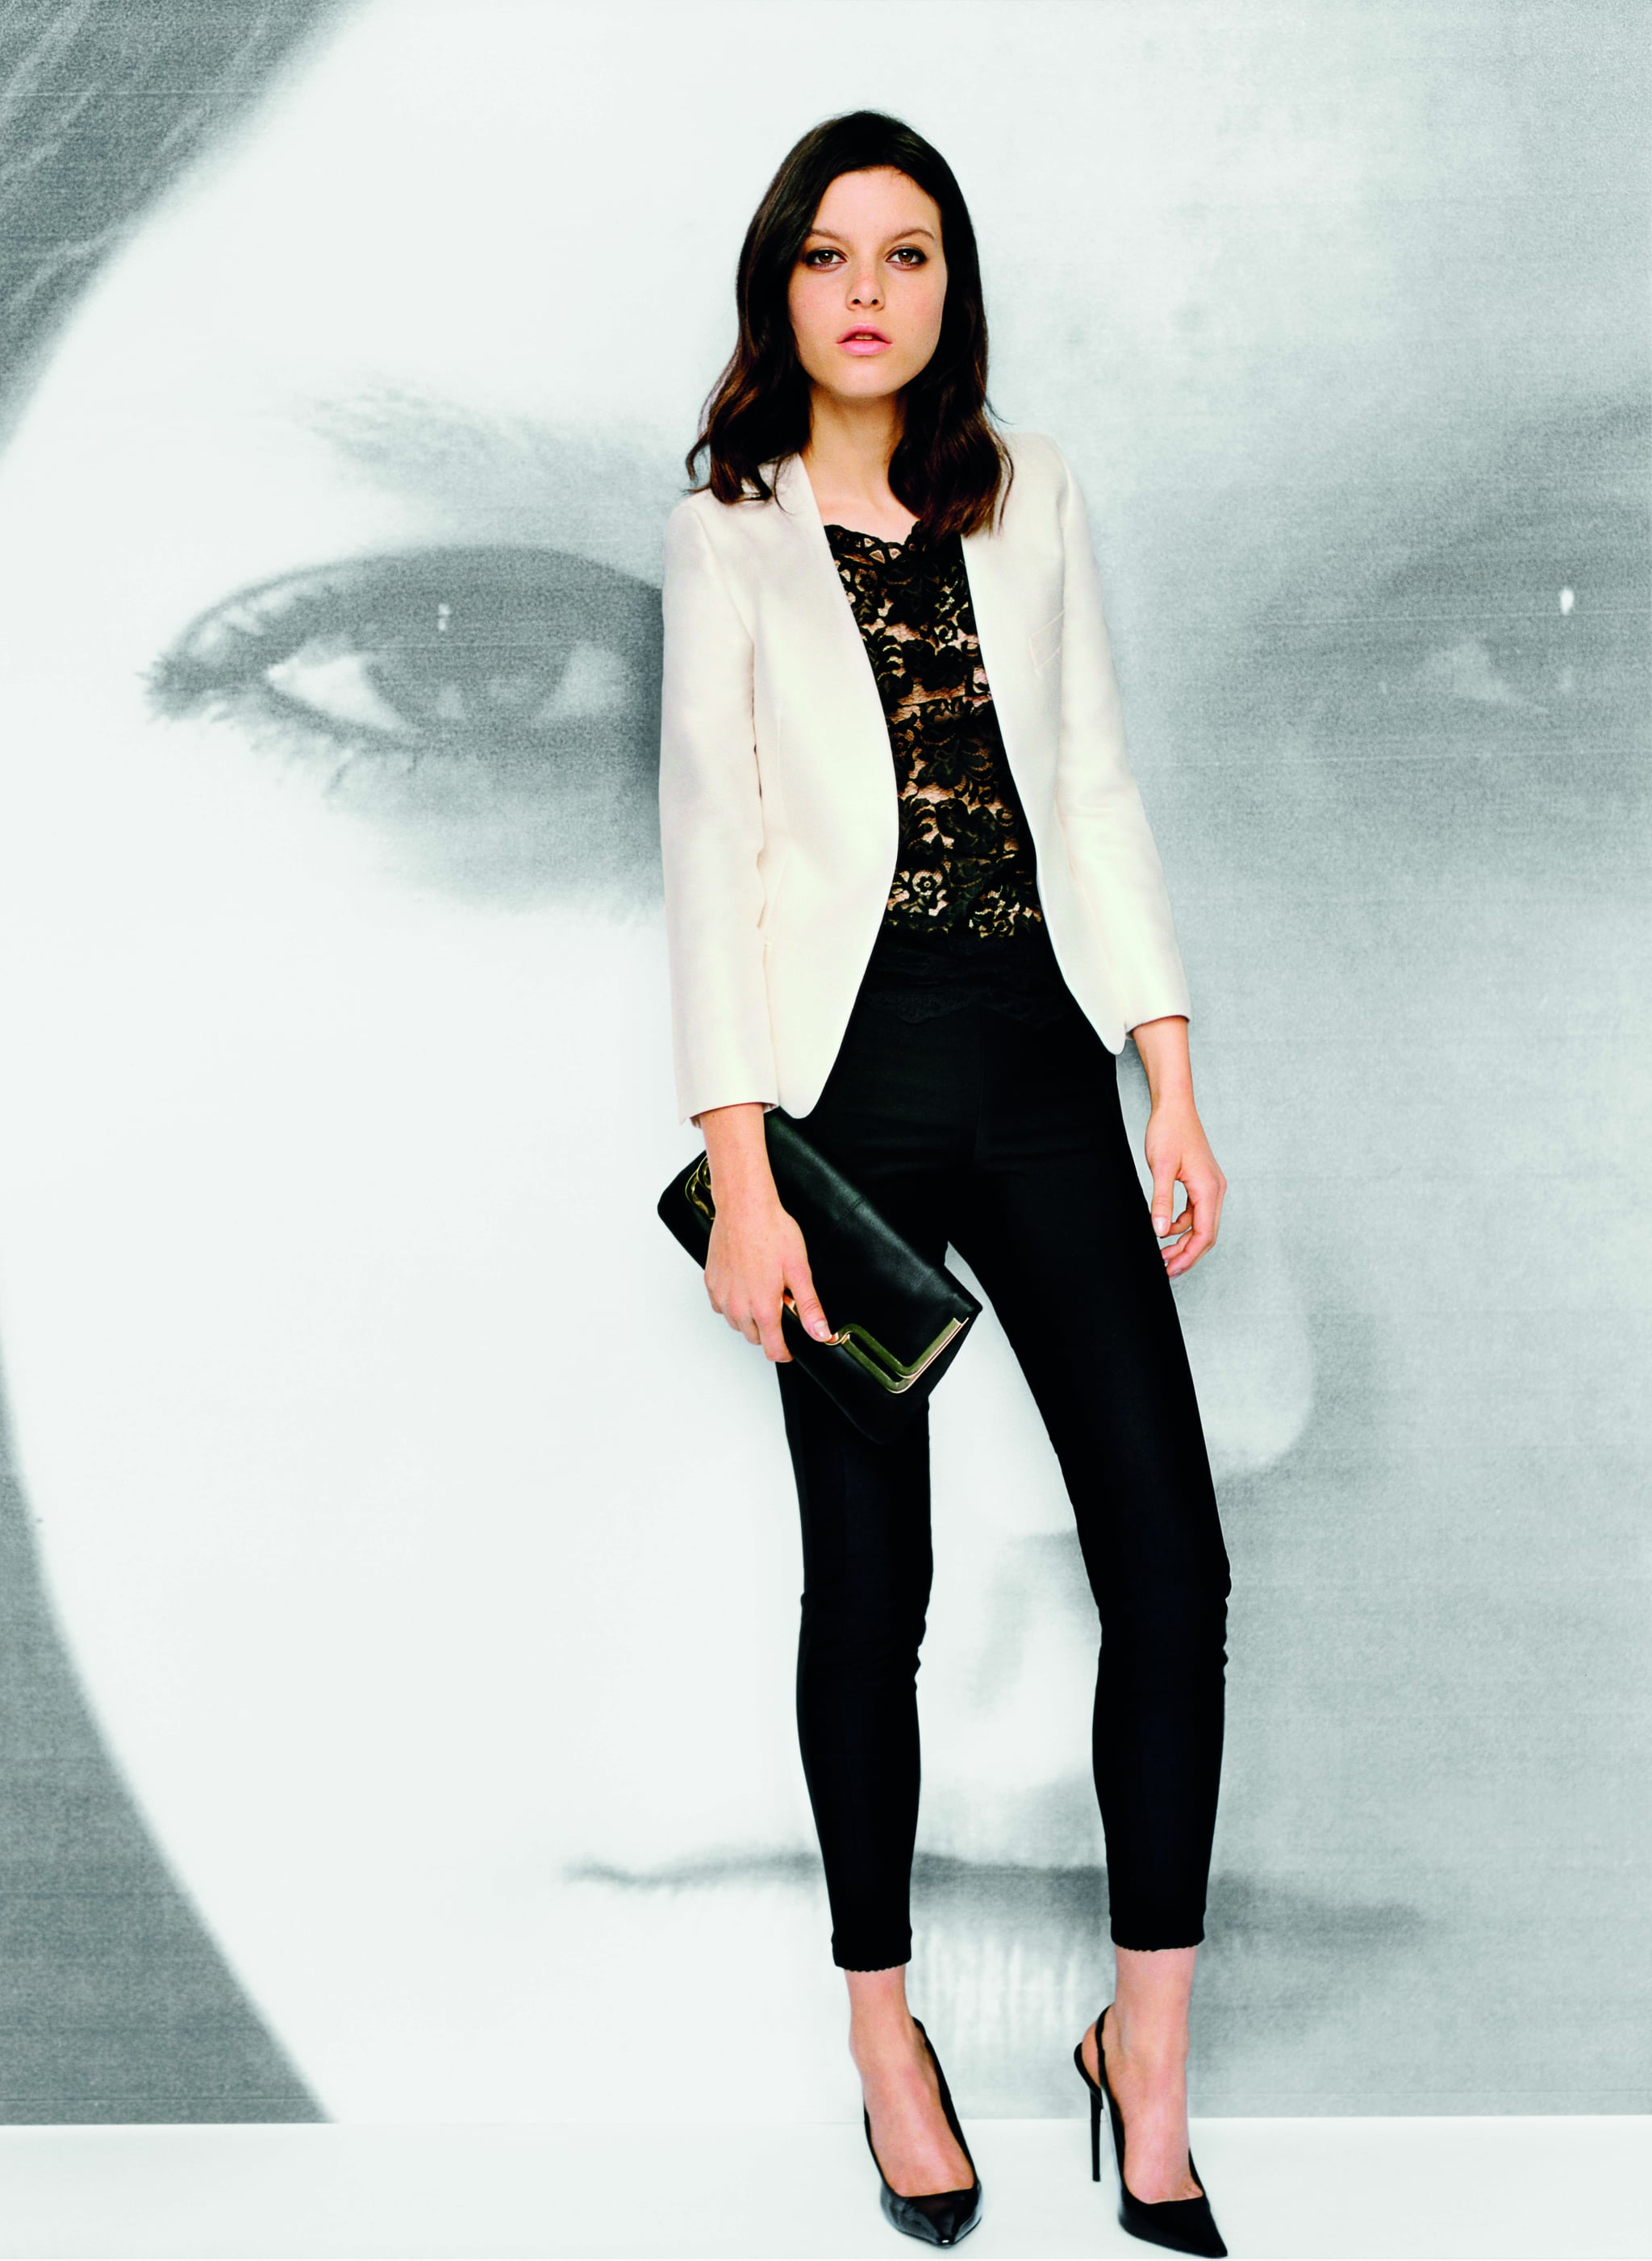 Collarless jacket in ivory, $199 Lace tee in black, $129 Tight lace insert trouser in black, $99 Frame clutch in black, $69